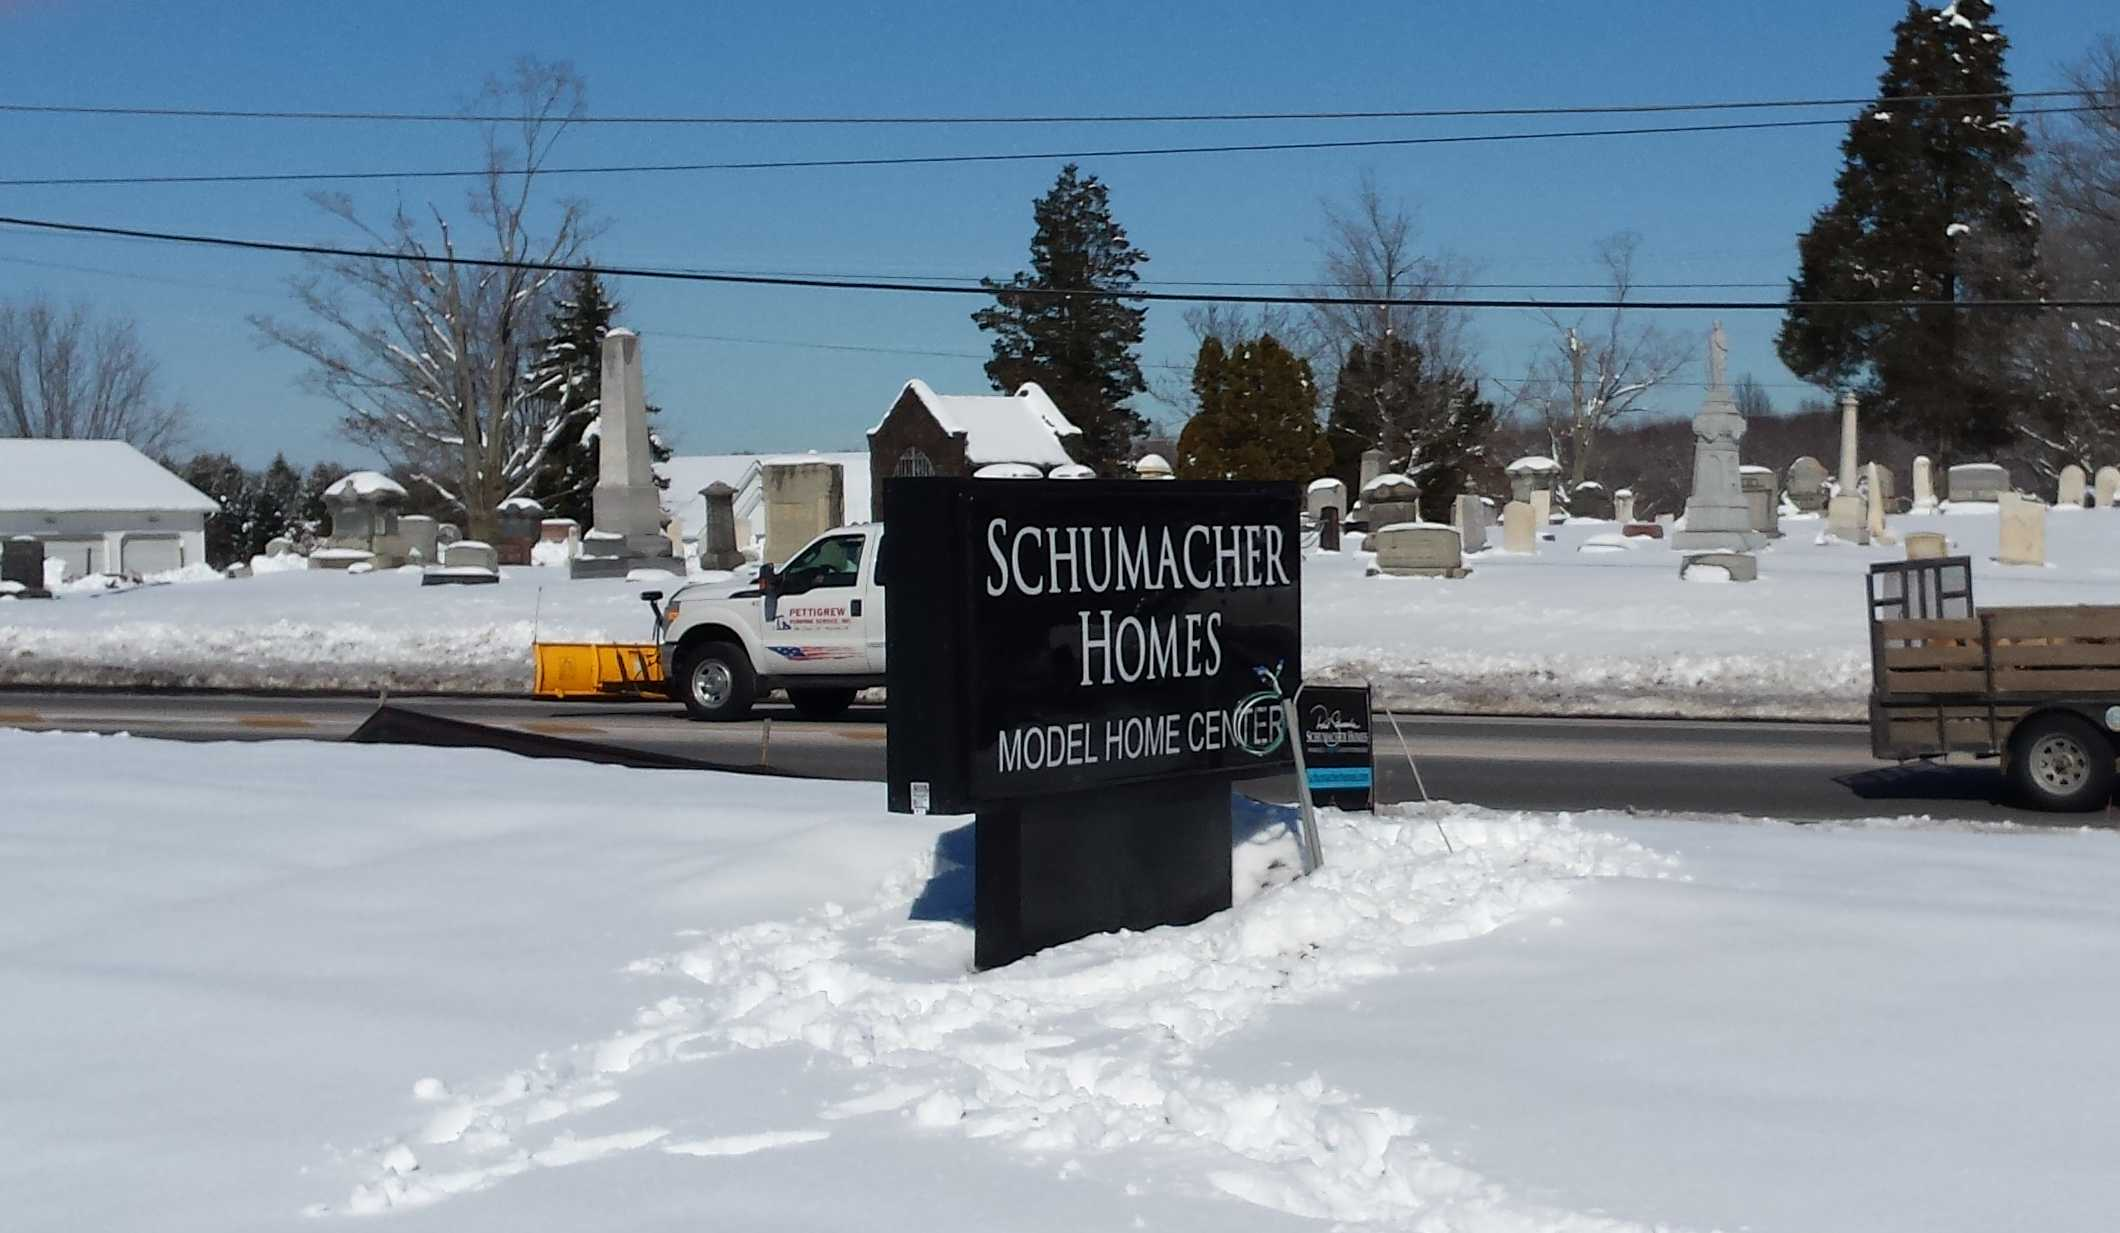 Schumacher Homes Ravenna Oh